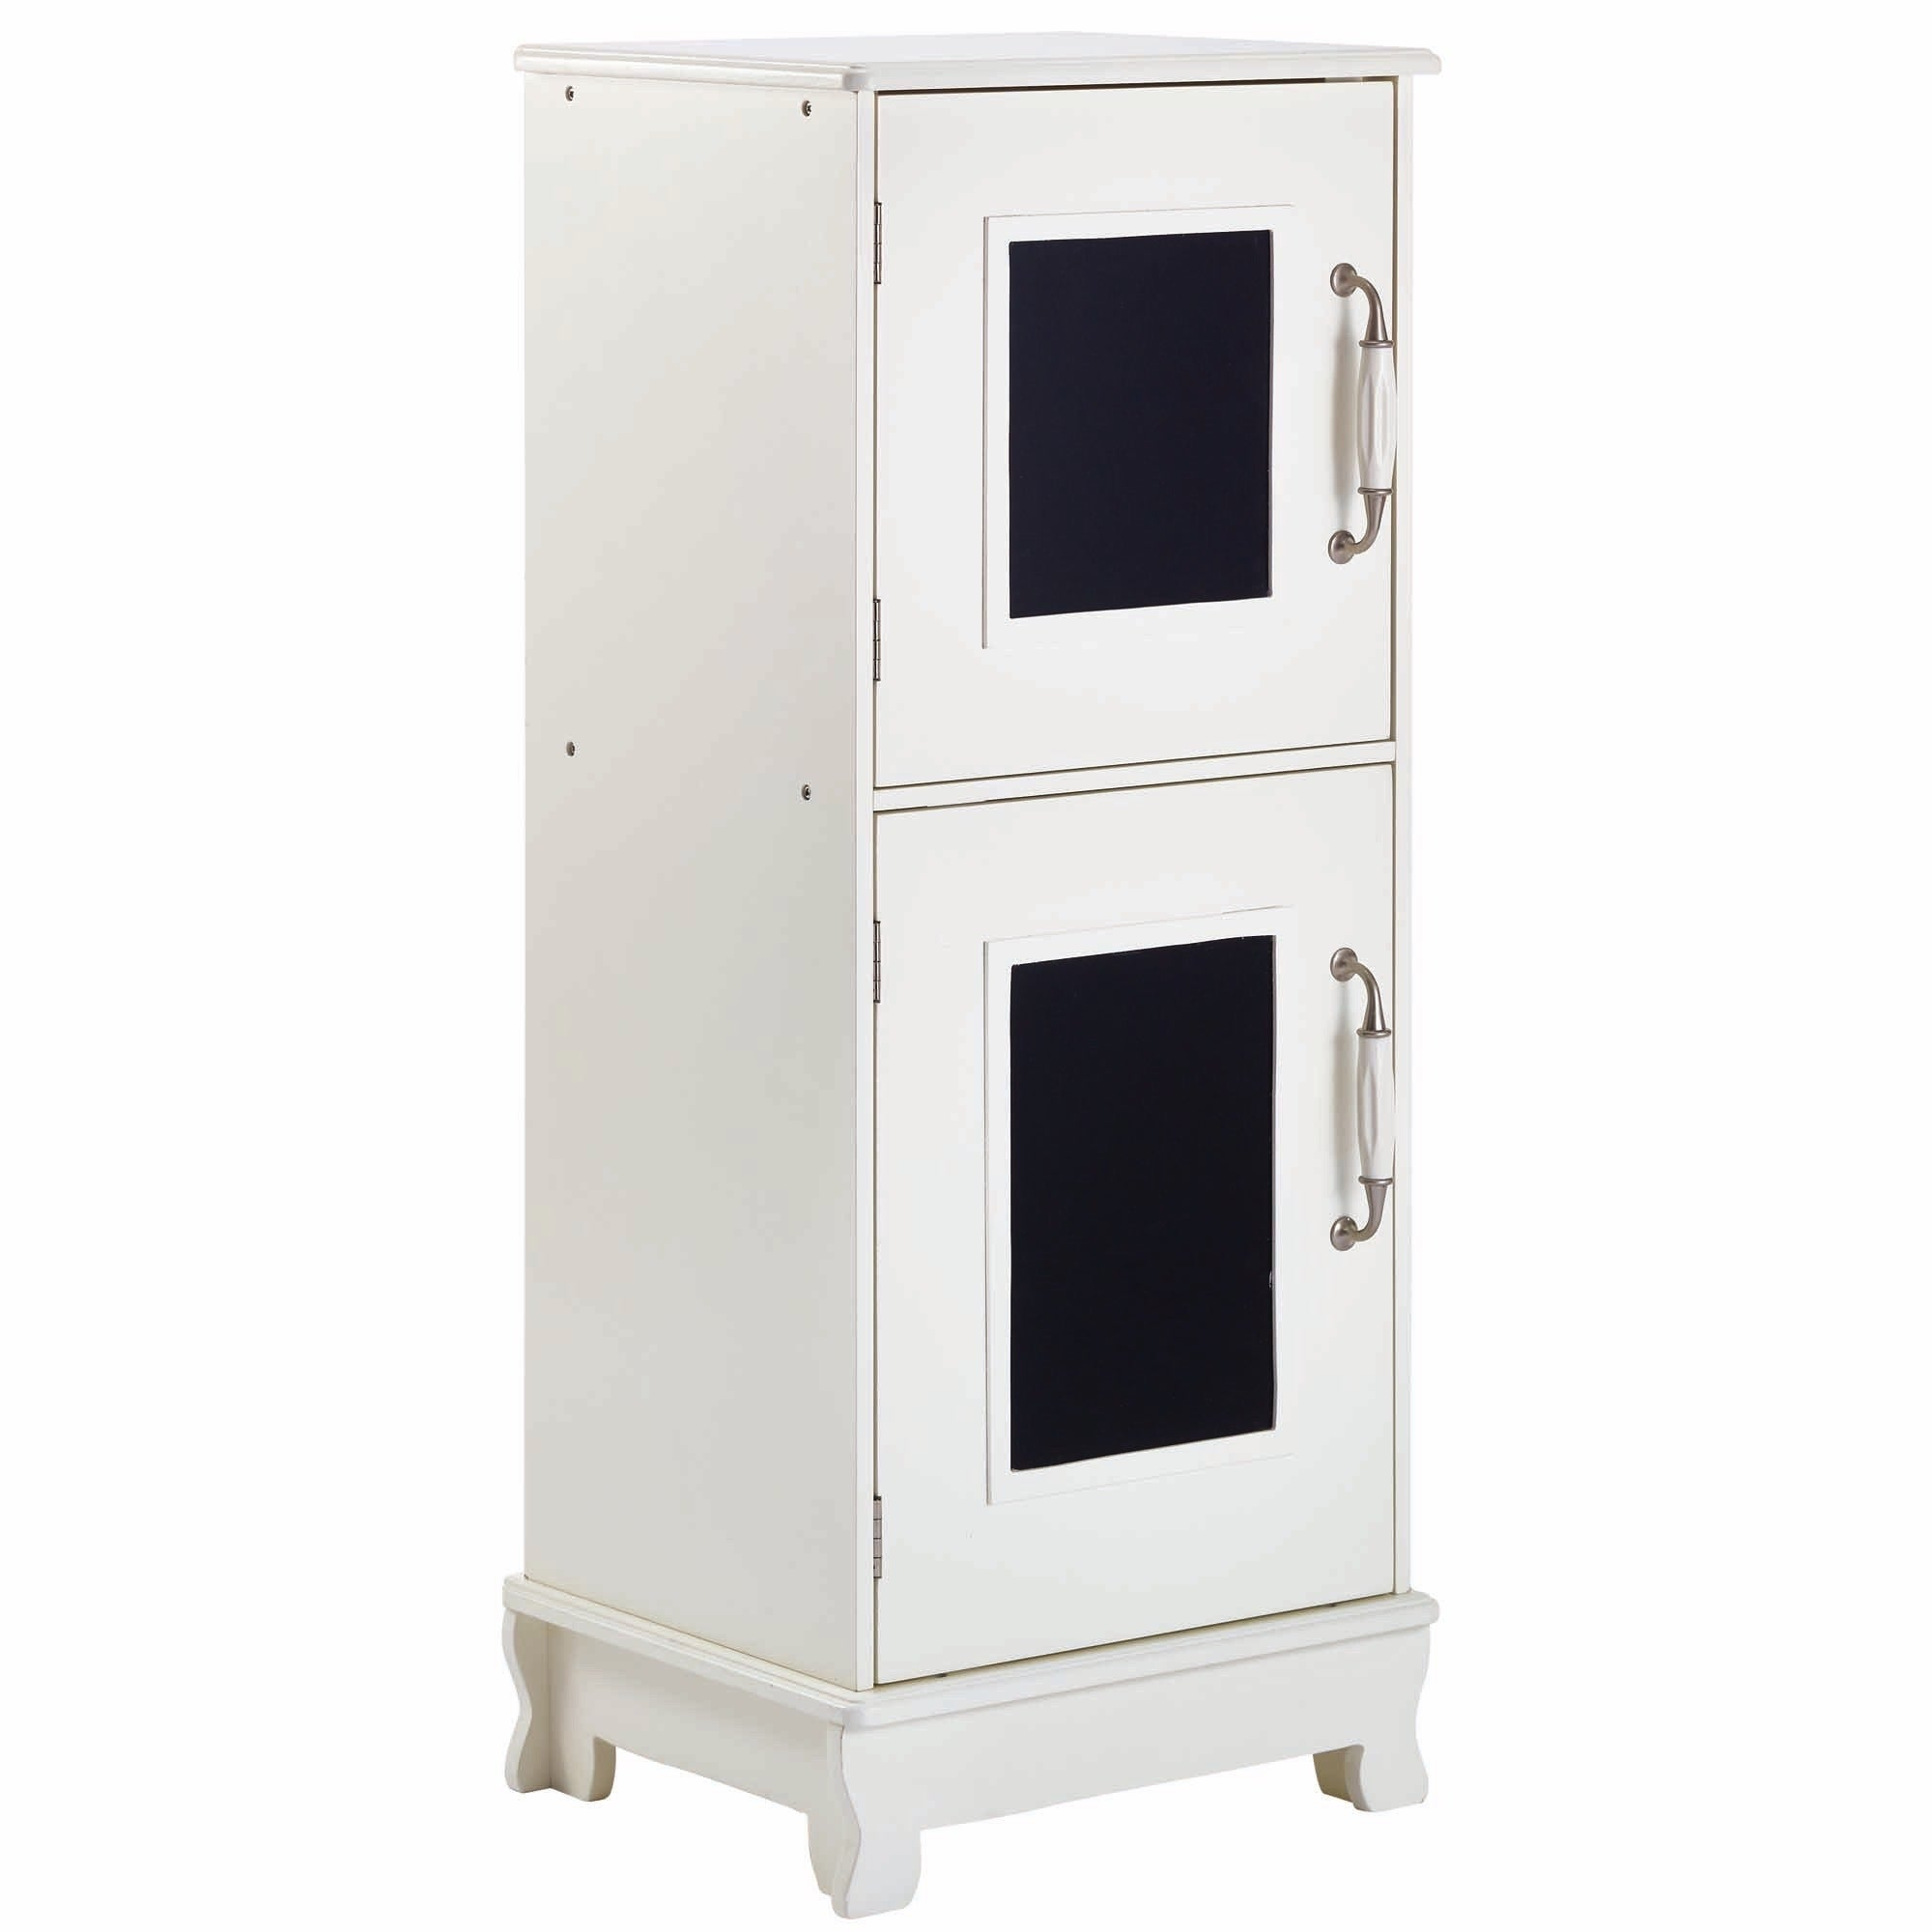 Shop Teamson Kids Sunday Brunch White Wooden Play Kitchen   On Sale   Free  Shipping Today   Overstock.com   12179166